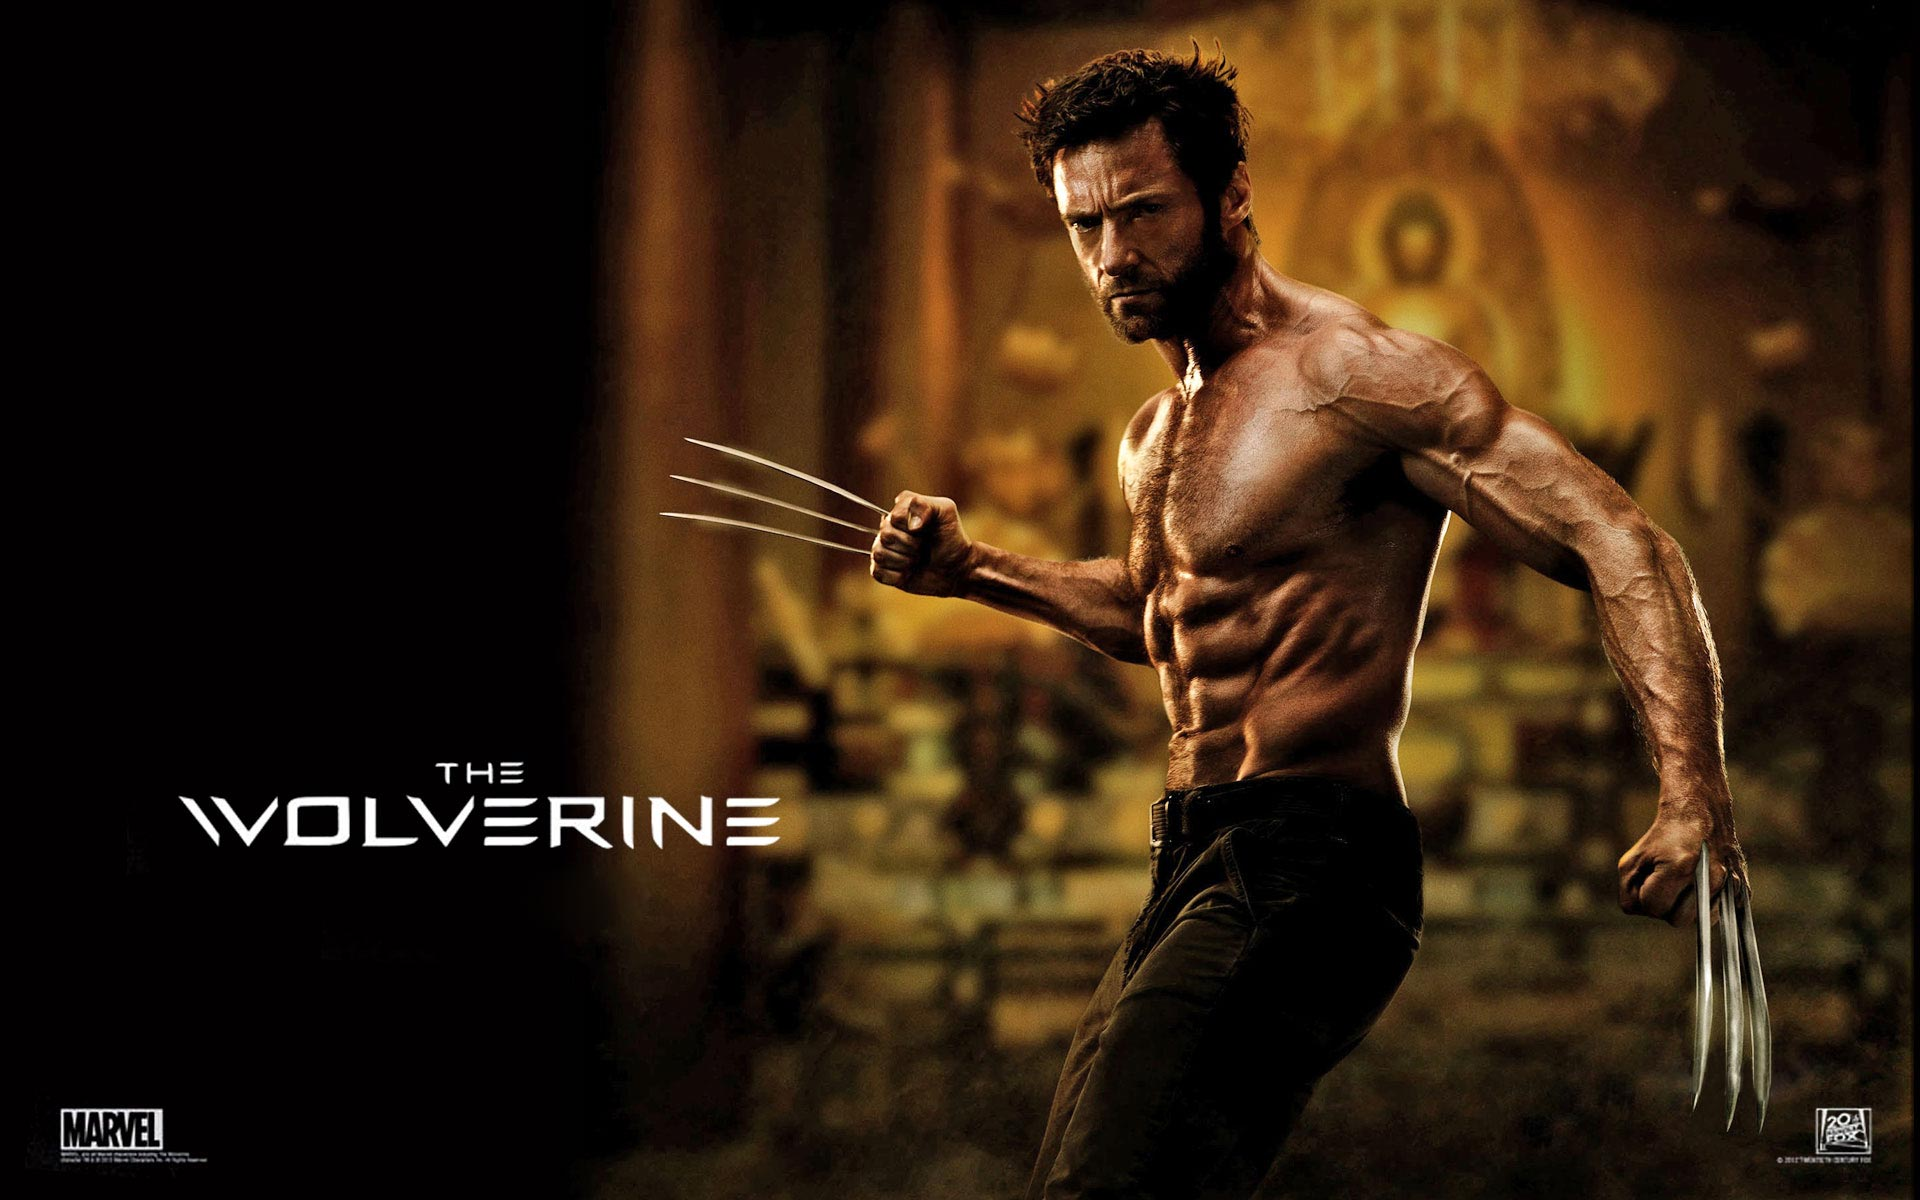 The wolverine full hd wallpaper and background image 1920x1200 movie the wolverine hugh jackman wolverine wallpaper voltagebd Images